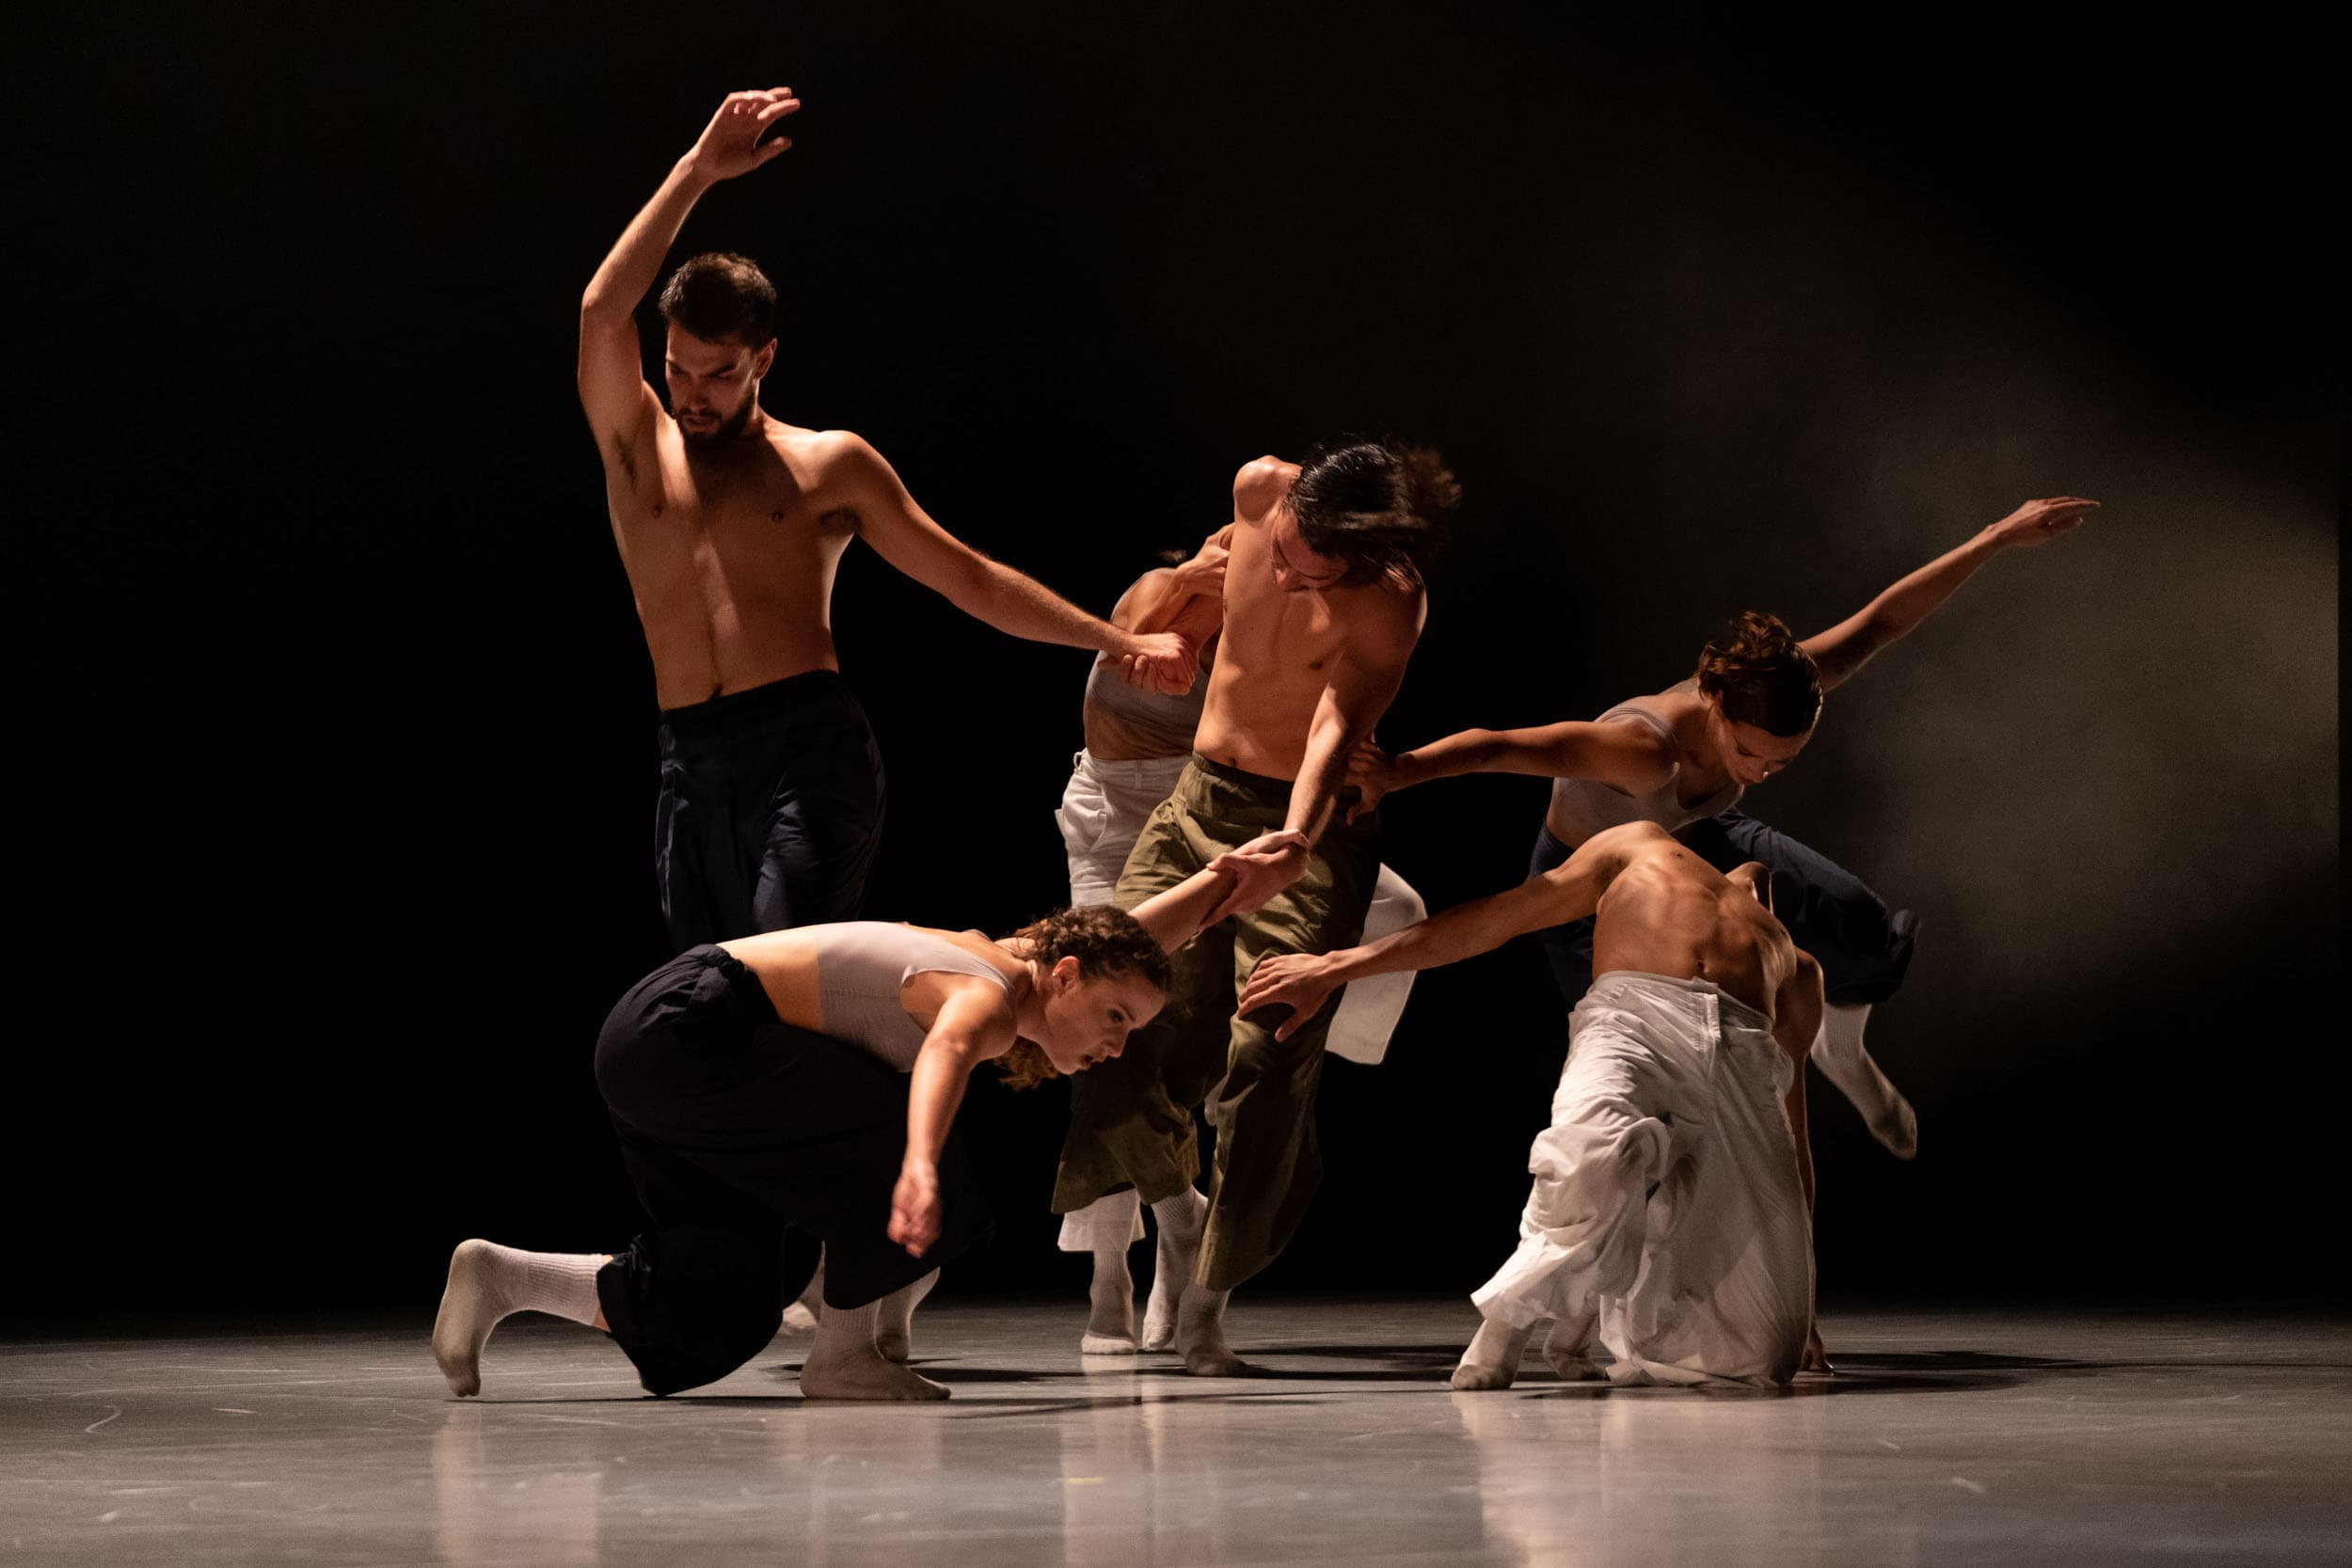 Picture of our piece Anhelo as performed at Tenerife